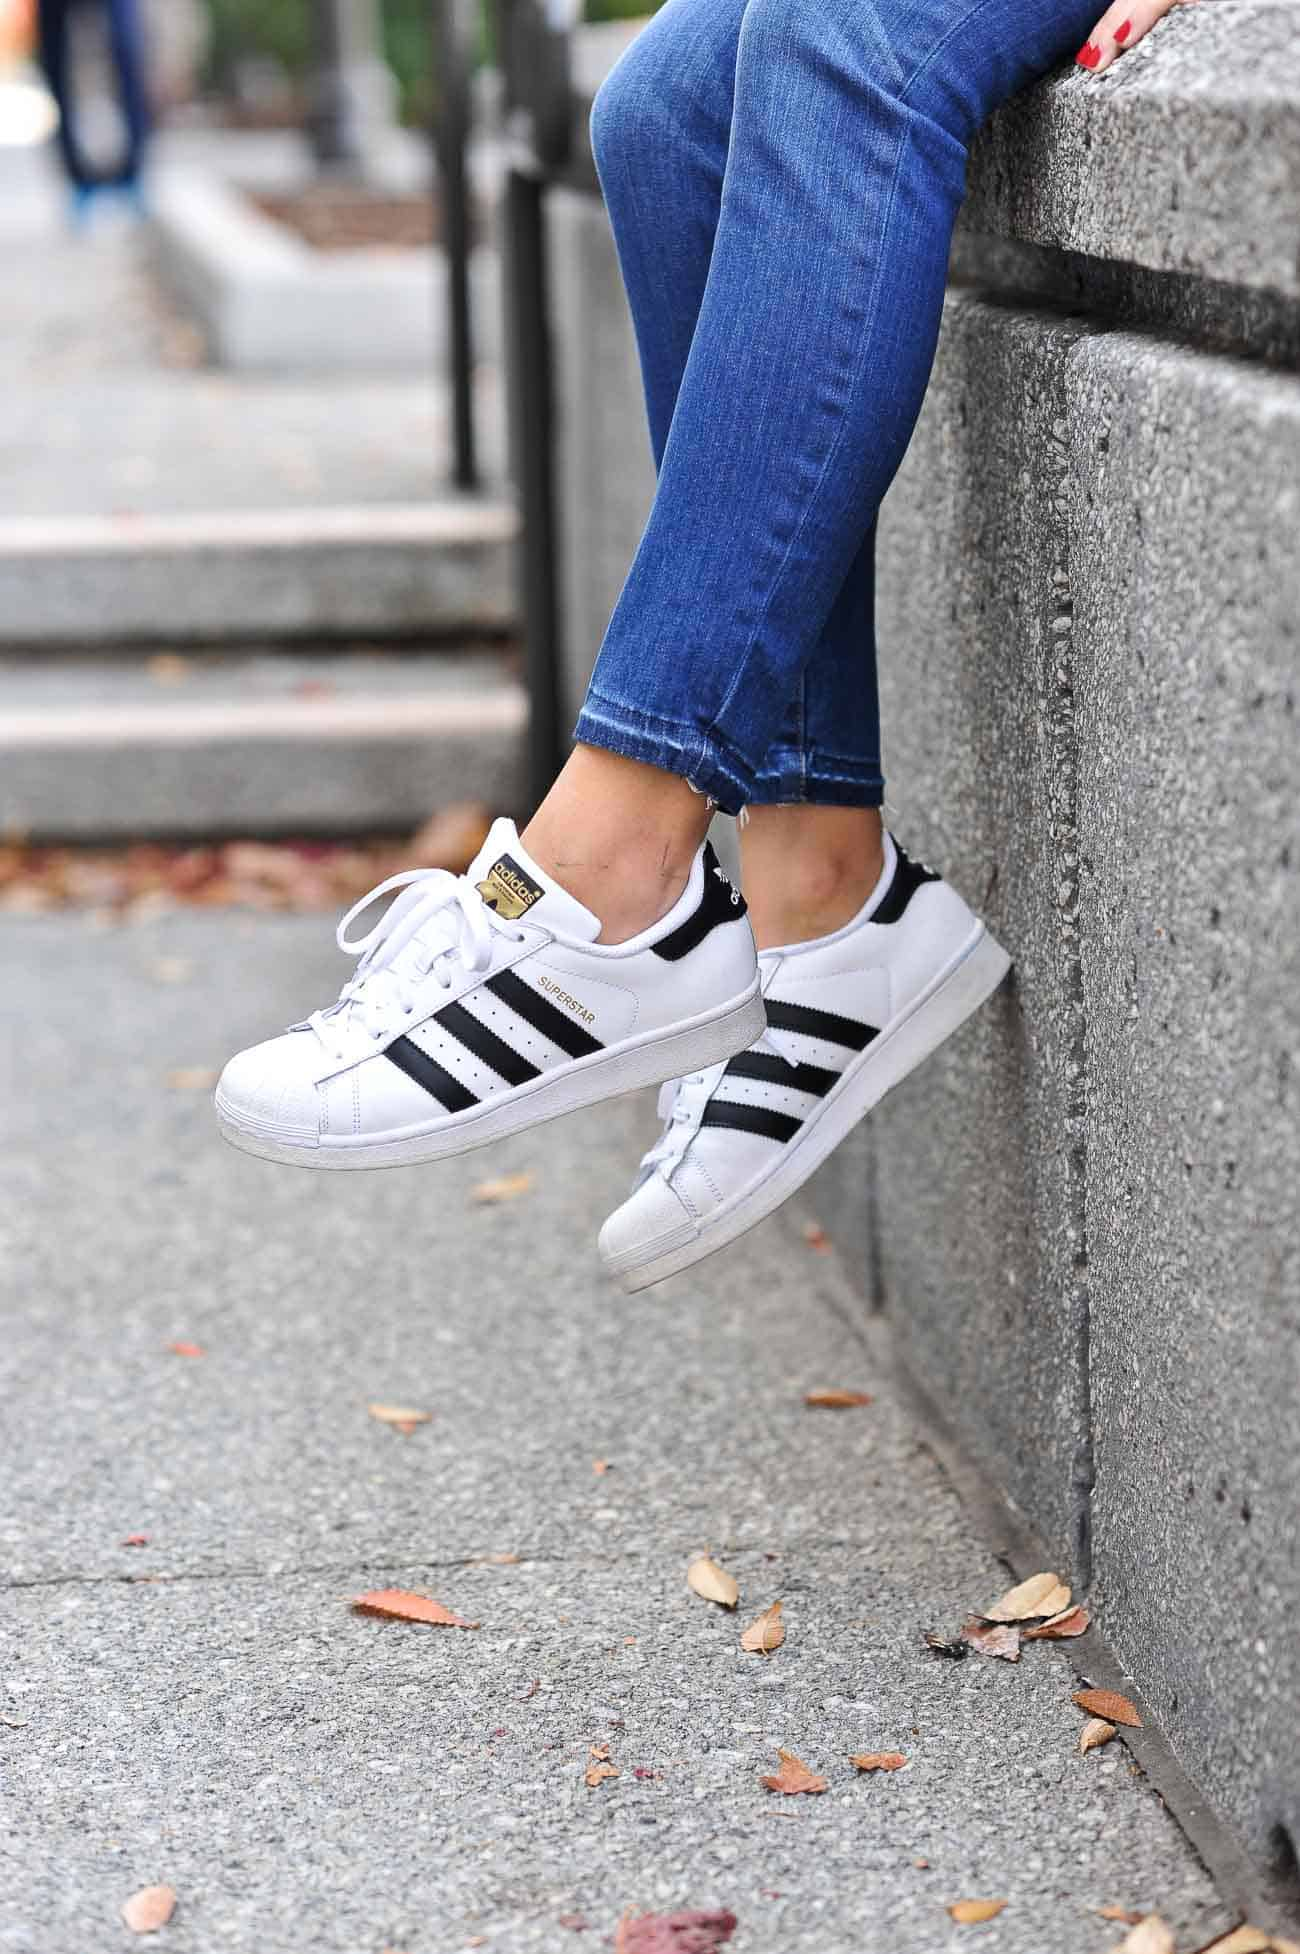 adidas, how to style adidas superstars - My Style vita @mystylevita